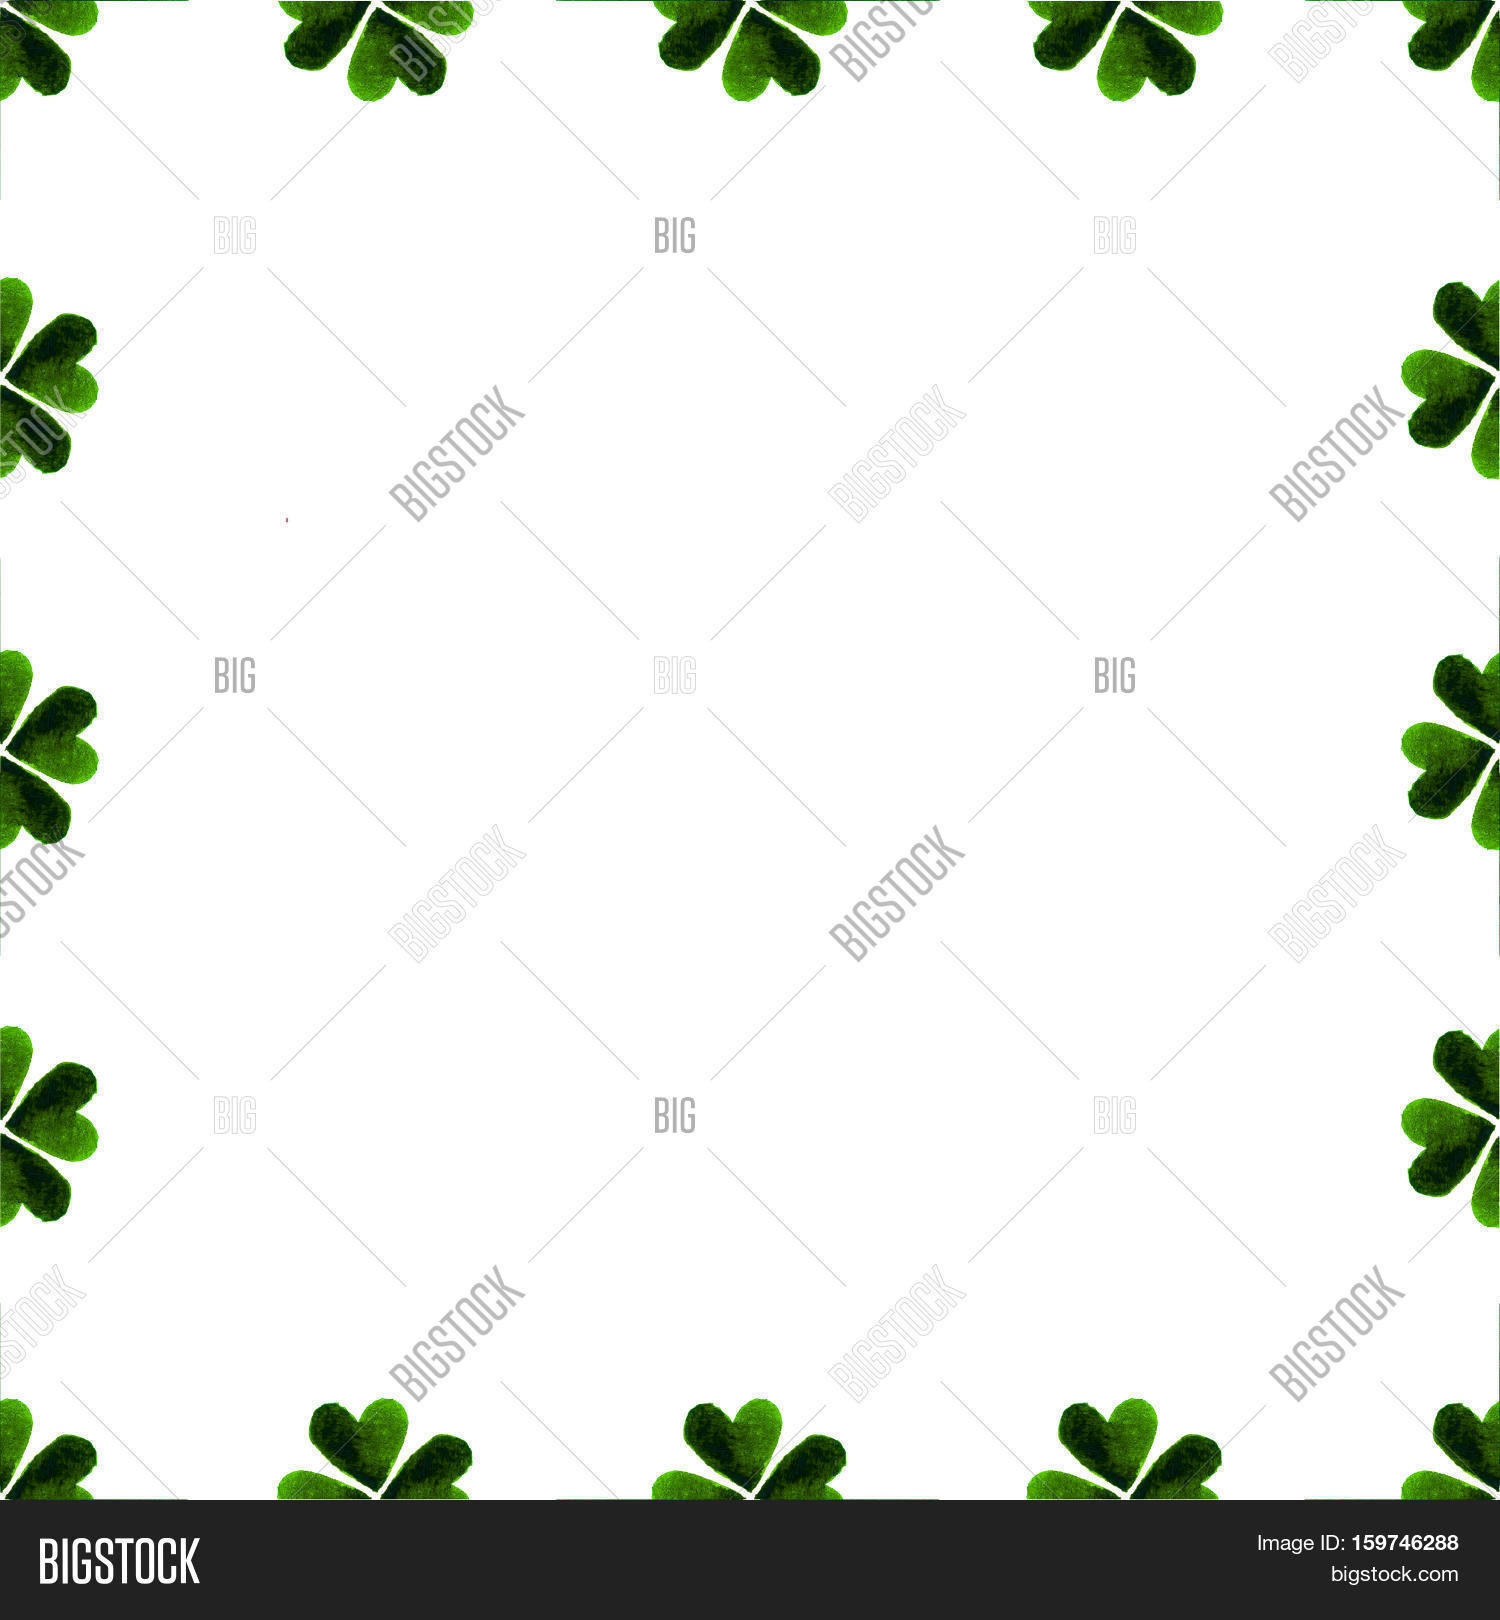 Fine 1 Inch Circle Template Thin 1 Round Label Template Regular 1.5 Inch Hexagon Template 10 Off Coupon Template Young 12 Team Schedule Template Dark15 Year Old Resume Template Illustration For Luck Spring Design With Shamrock. Green Clover ..